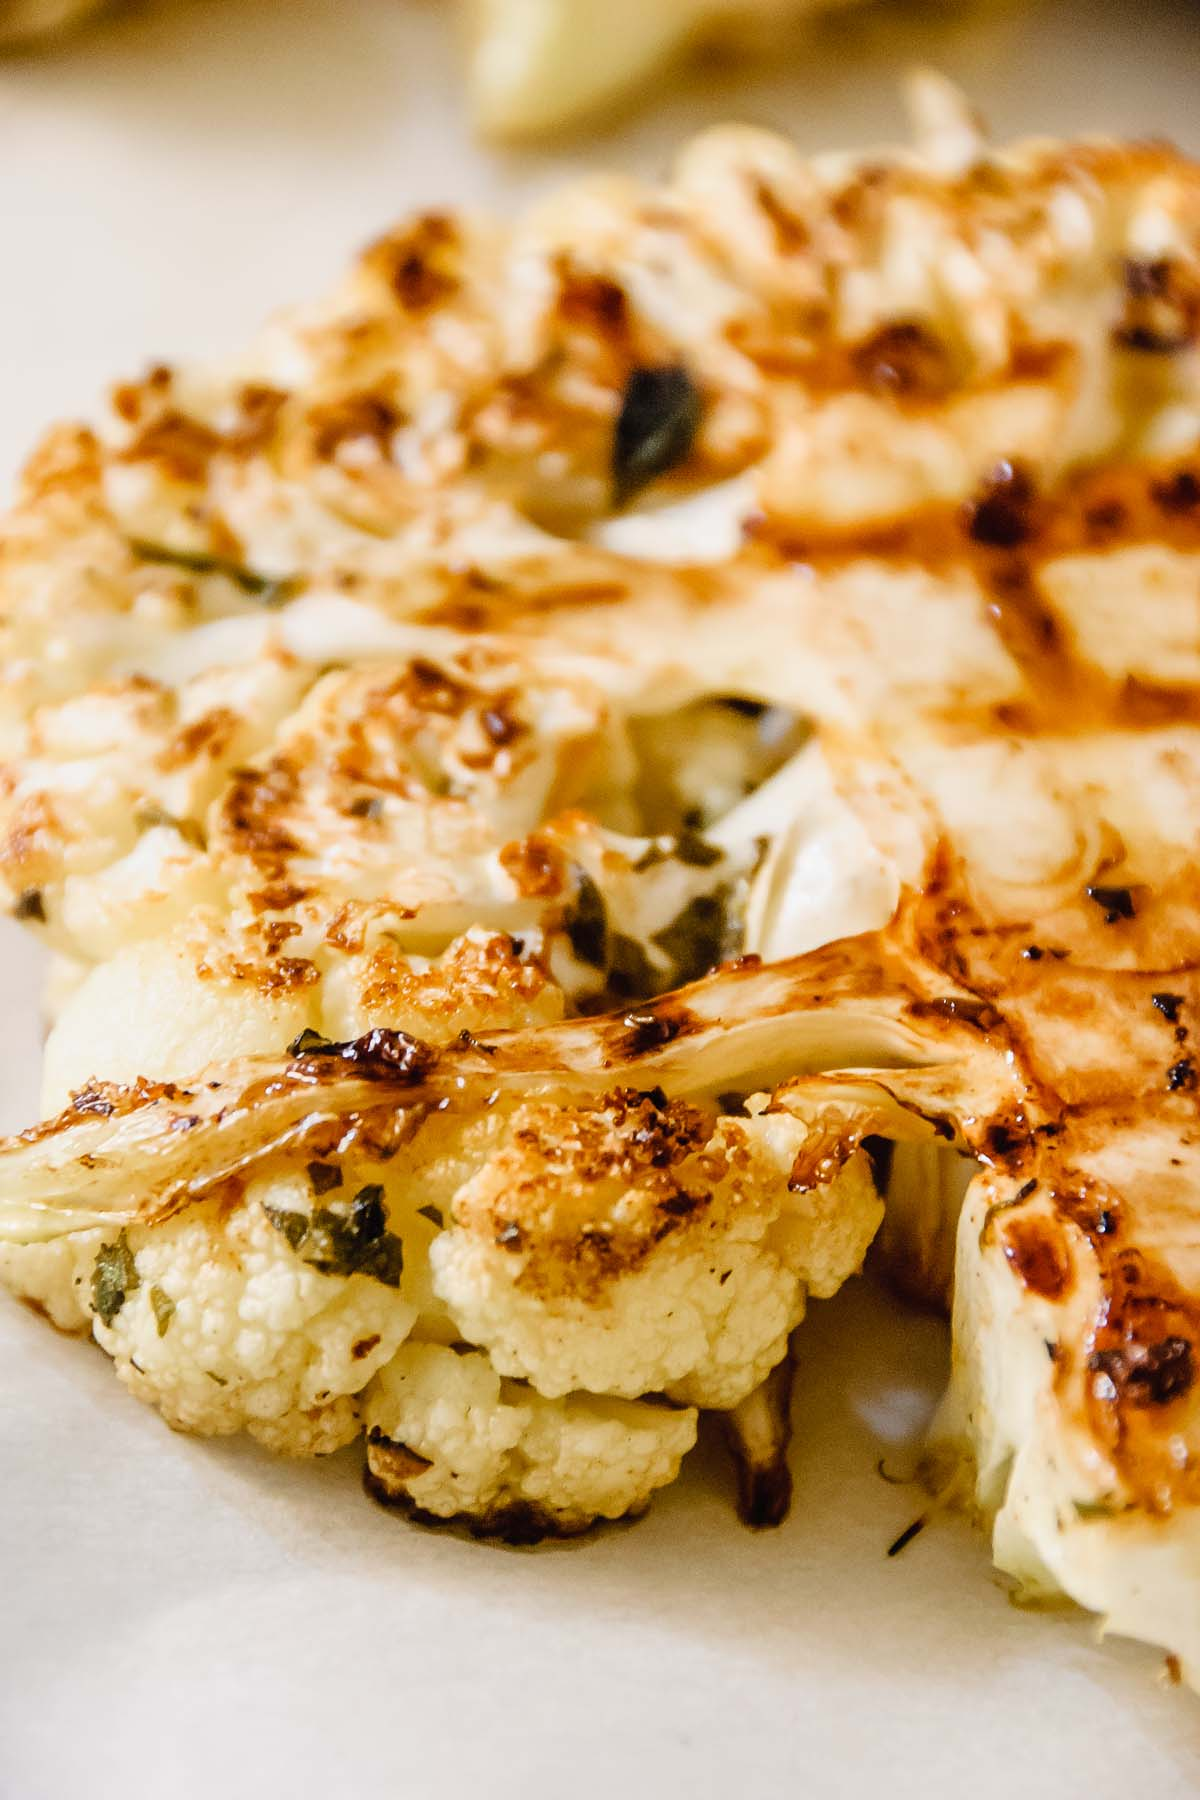 Super close up of a grilled greek cauliflower steak.